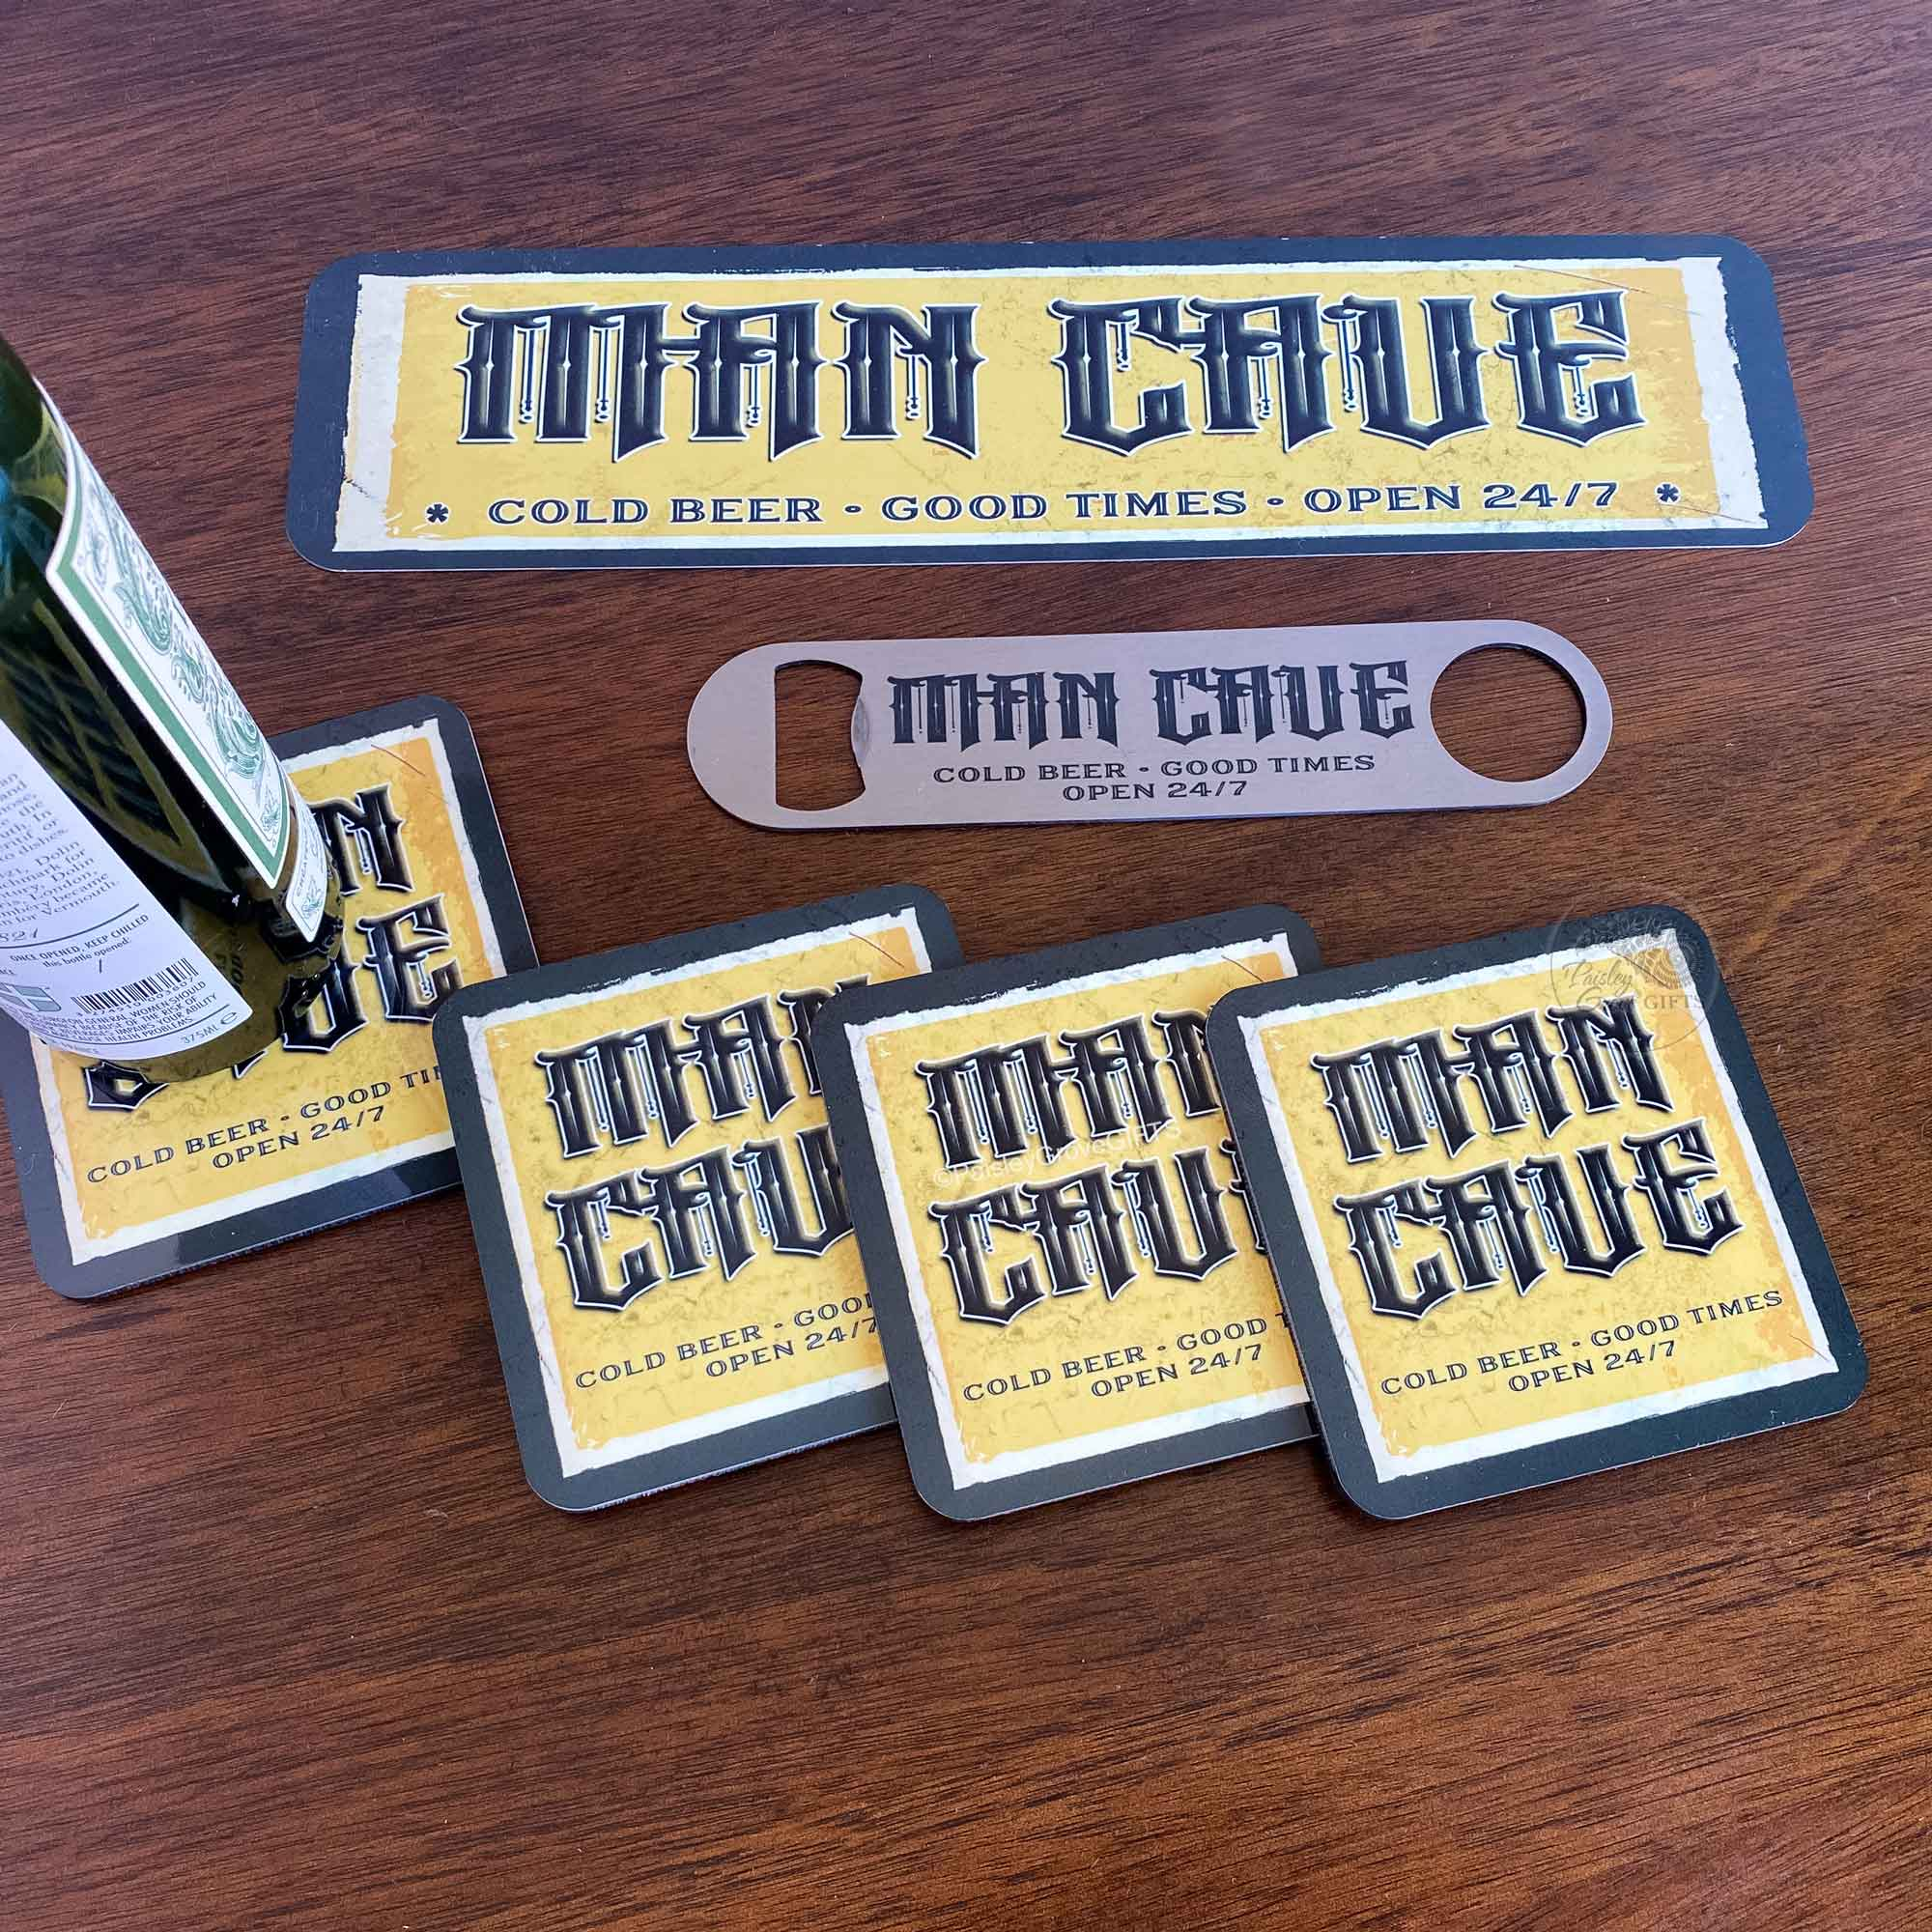 S957b-Copyright PaisleyGroveGIFTS-Mancave Decor Gift for Him Metal Door Sign Beer Bottle Opener Beer Coasters